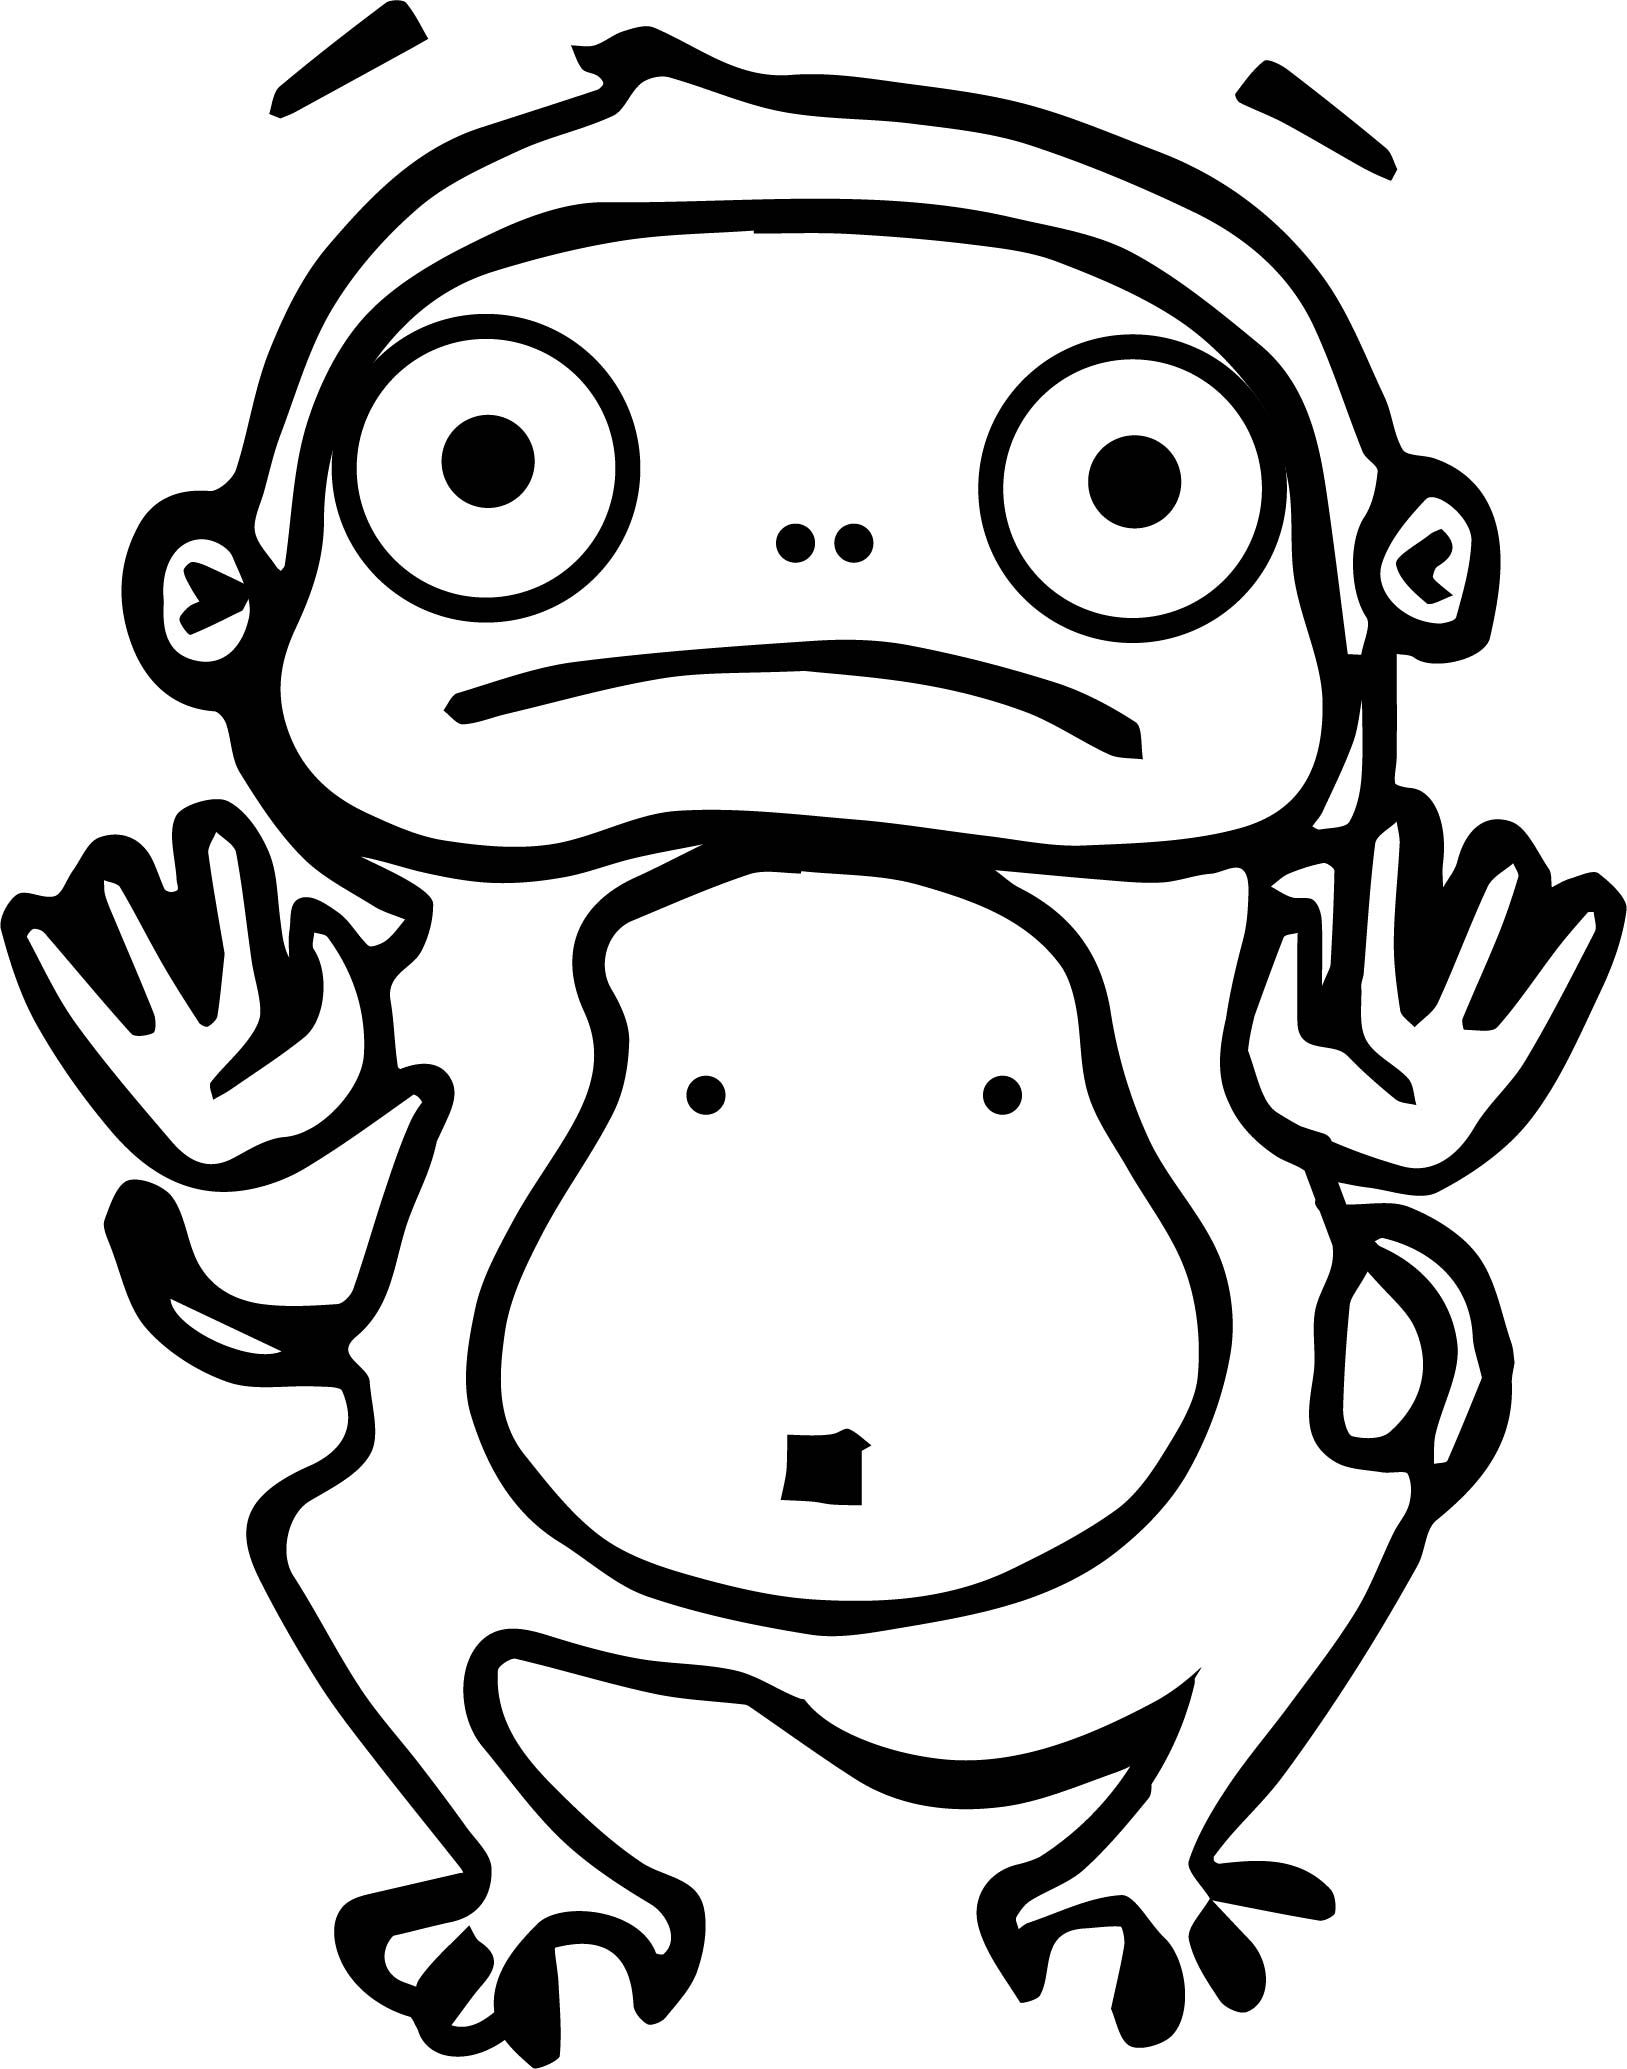 Monkey Cartoon Characters Coloring Page Wecoloringpage